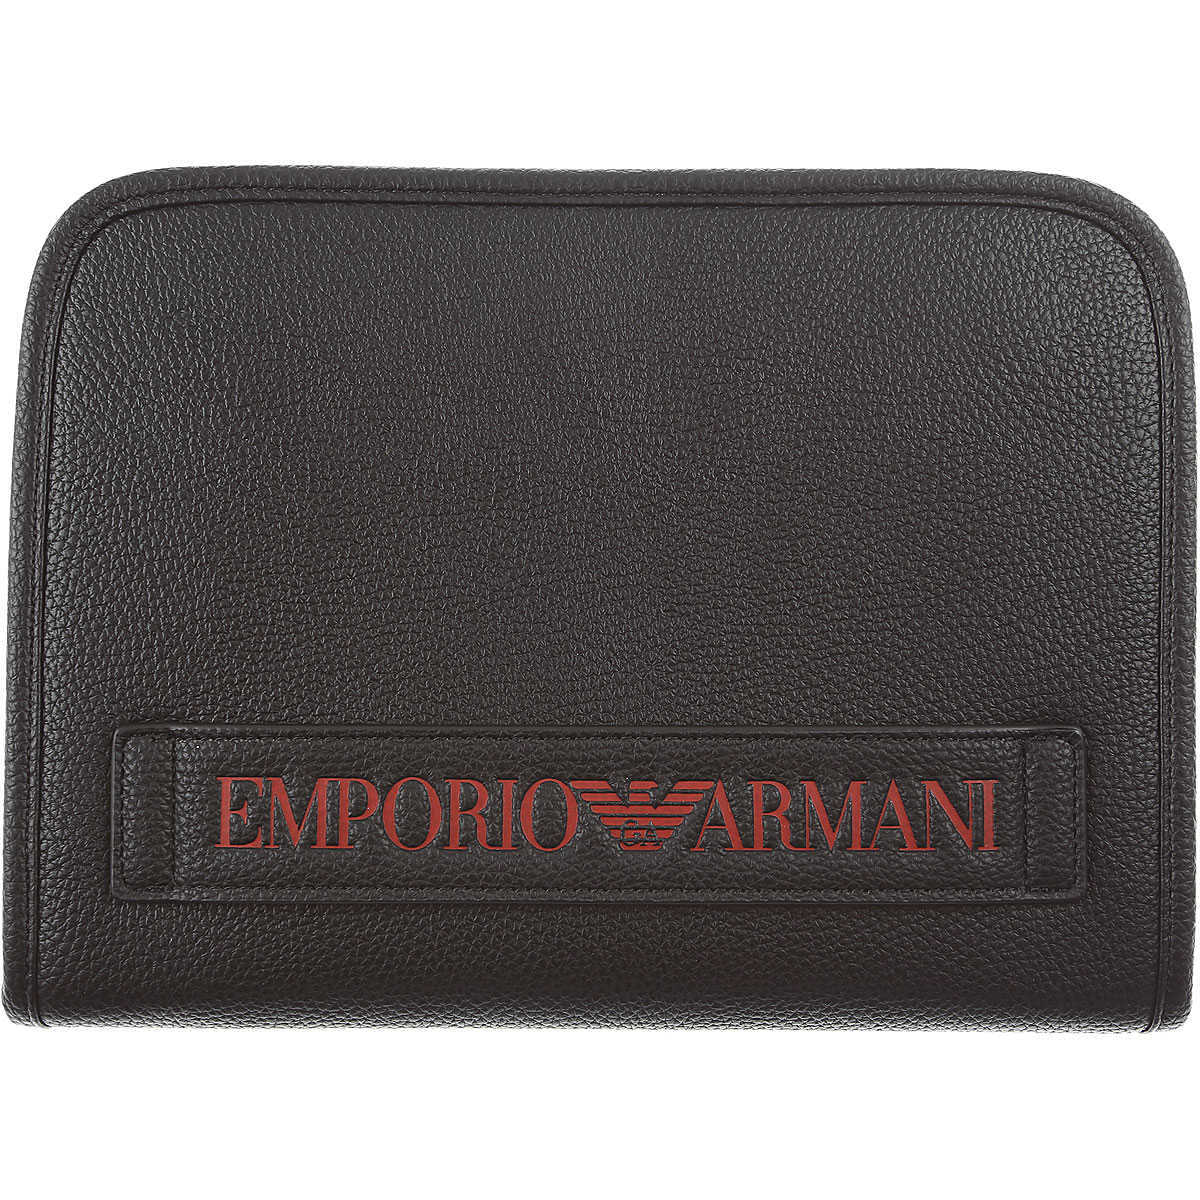 Emporio Armani Wallet for Men On Sale Black - GOOFASH